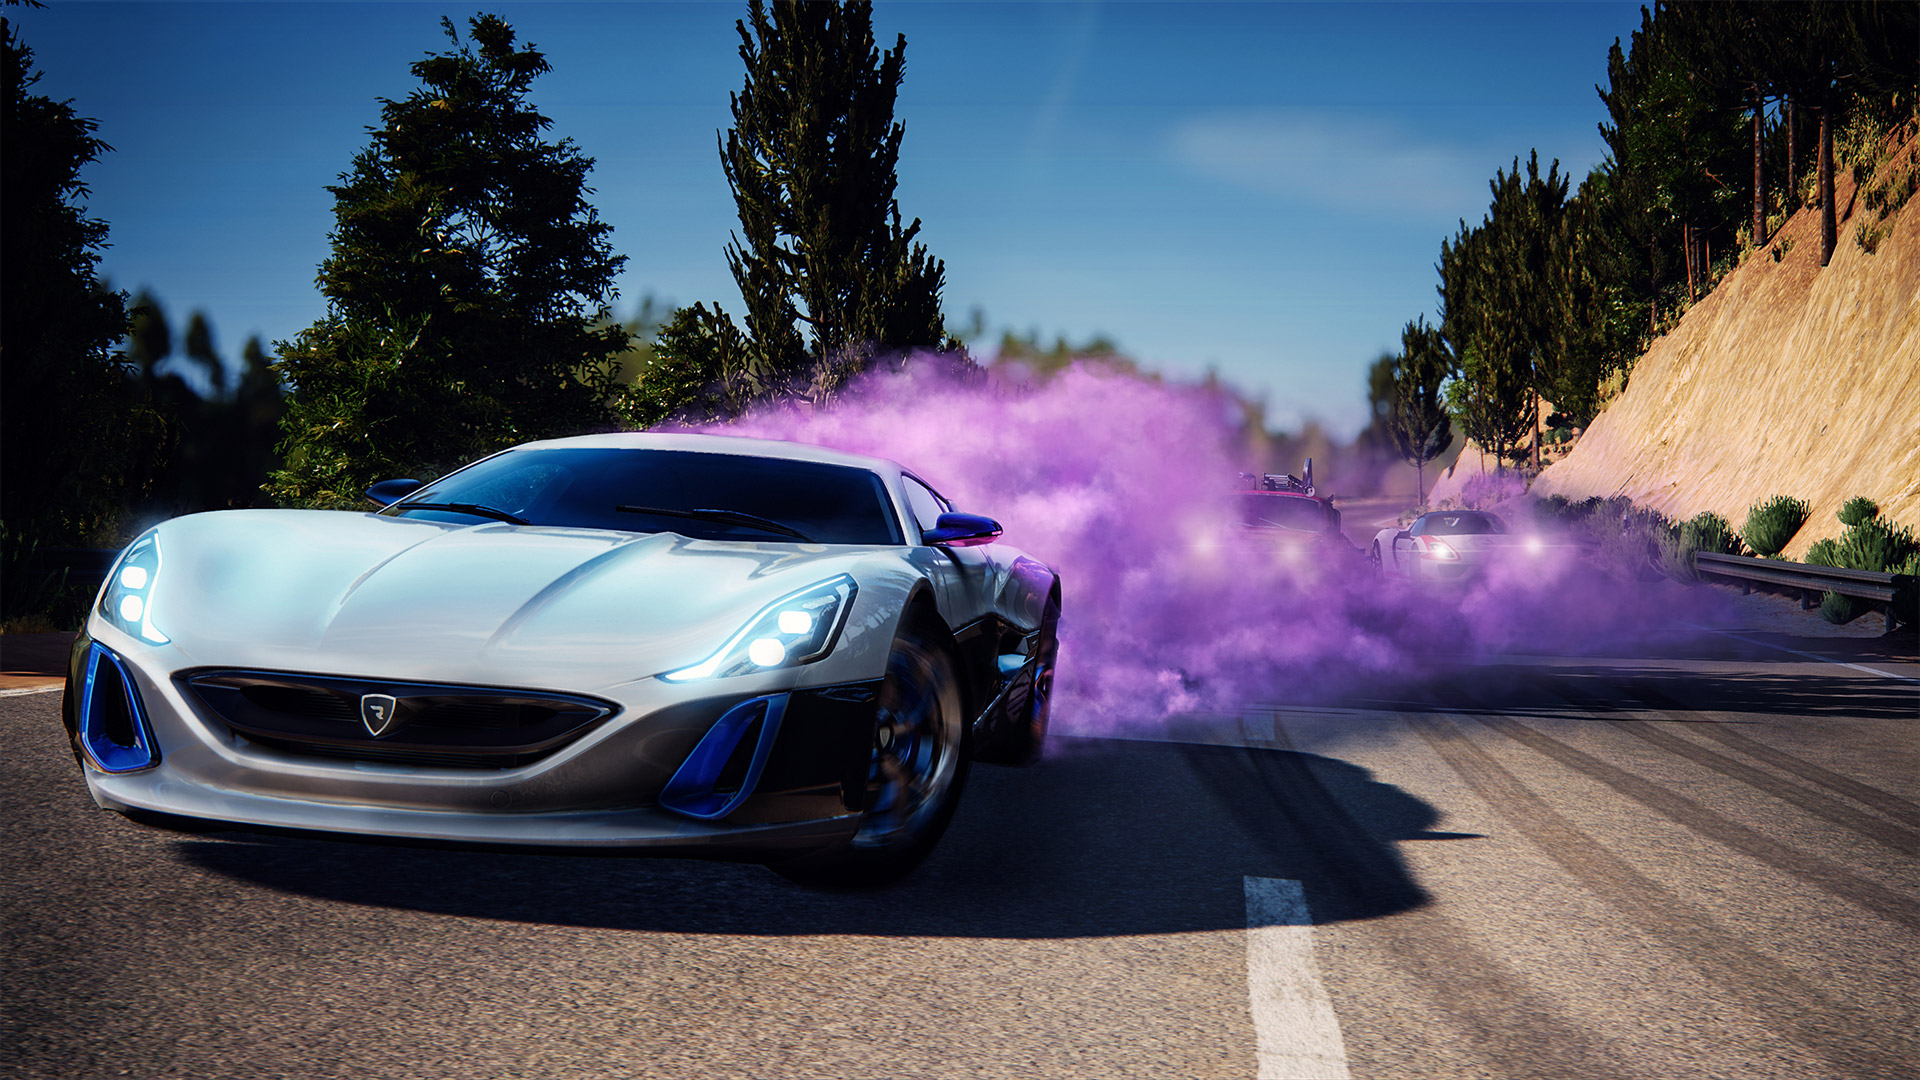 The Grand Tour Game (PS4) - not Gran Turismo, or Forza Motorsport for that matter